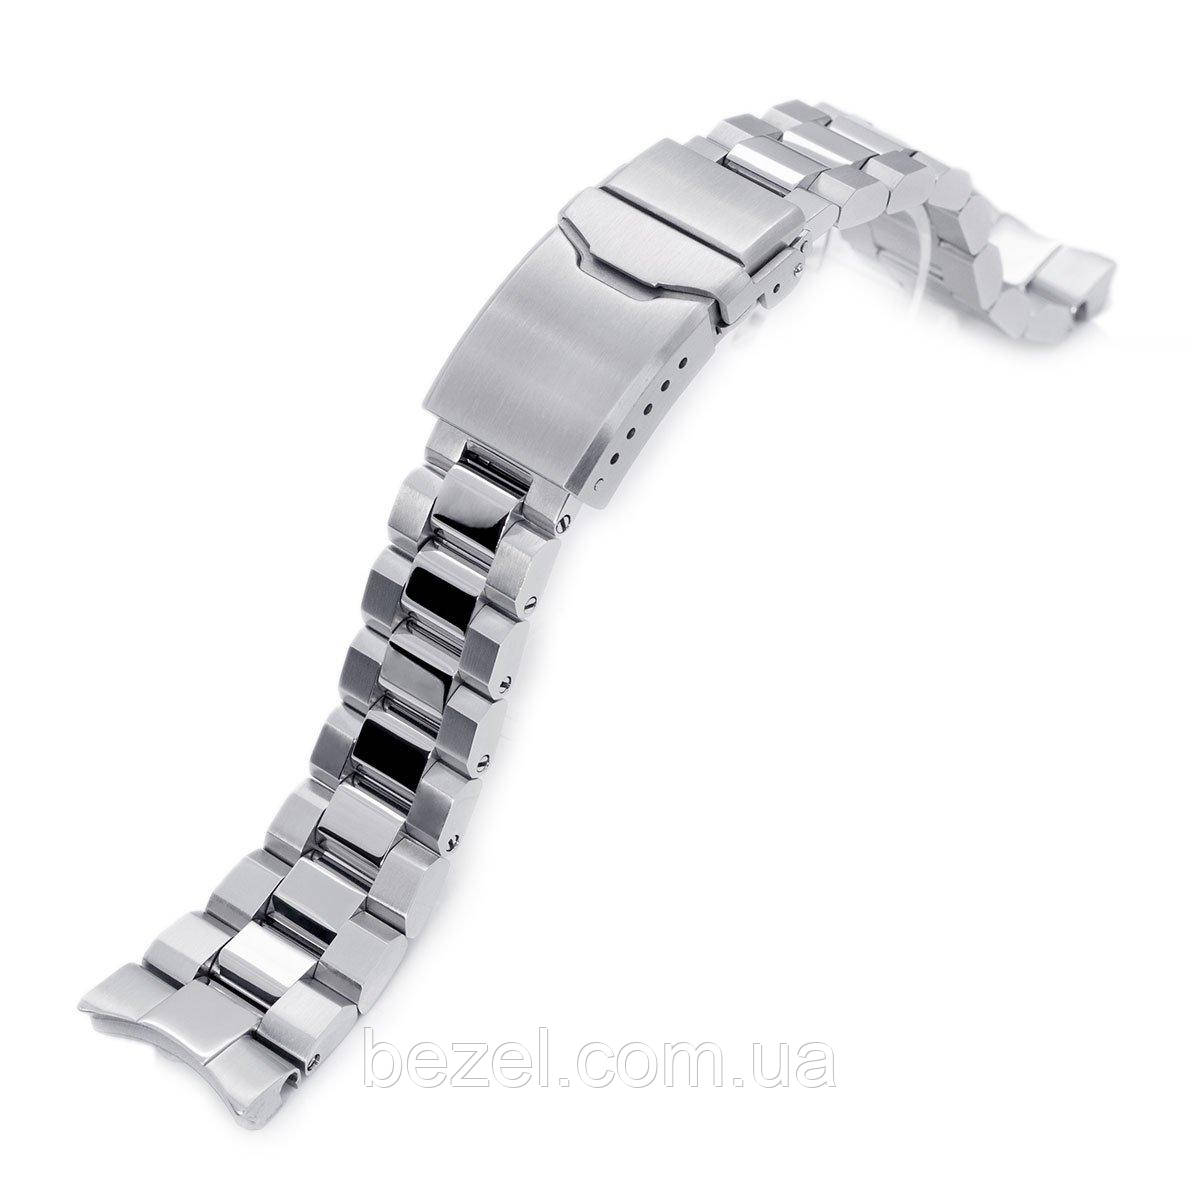 22mm Hexad Oyster 316L Stainless Steel Watch Band for Seiko Samurai SRPB51, Brushed & Polished Button Chamfer